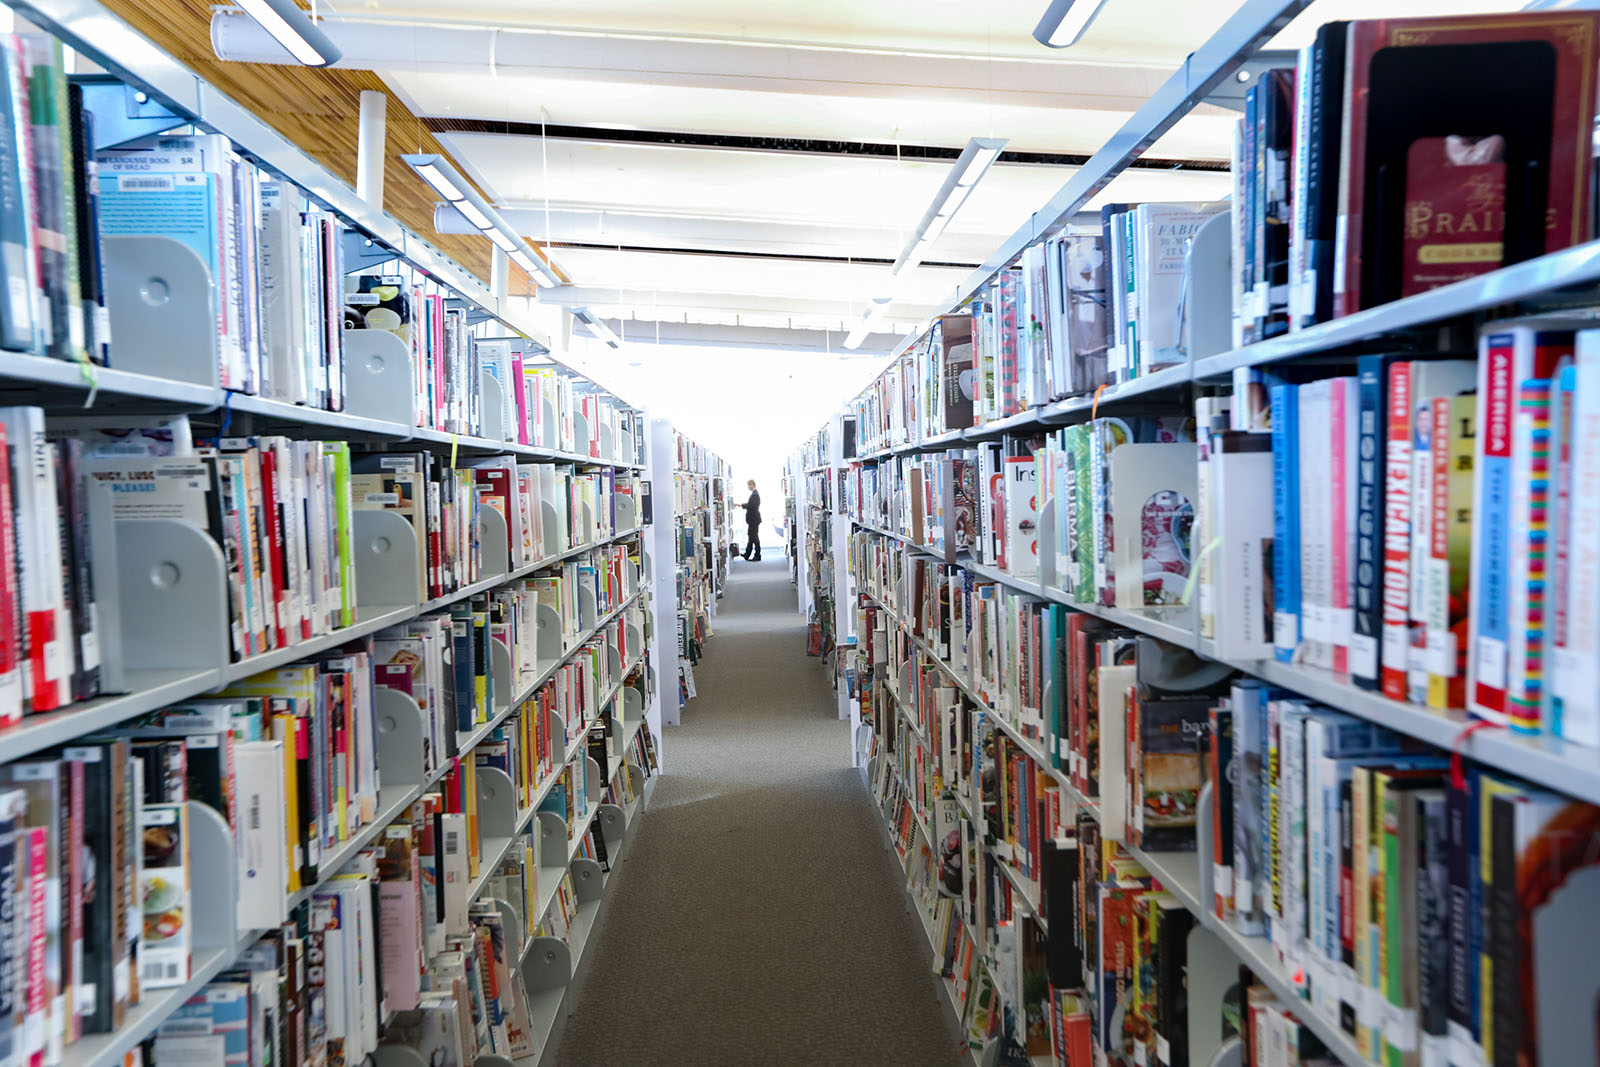 Long shelves of books, with a person standing at the end of the aisle